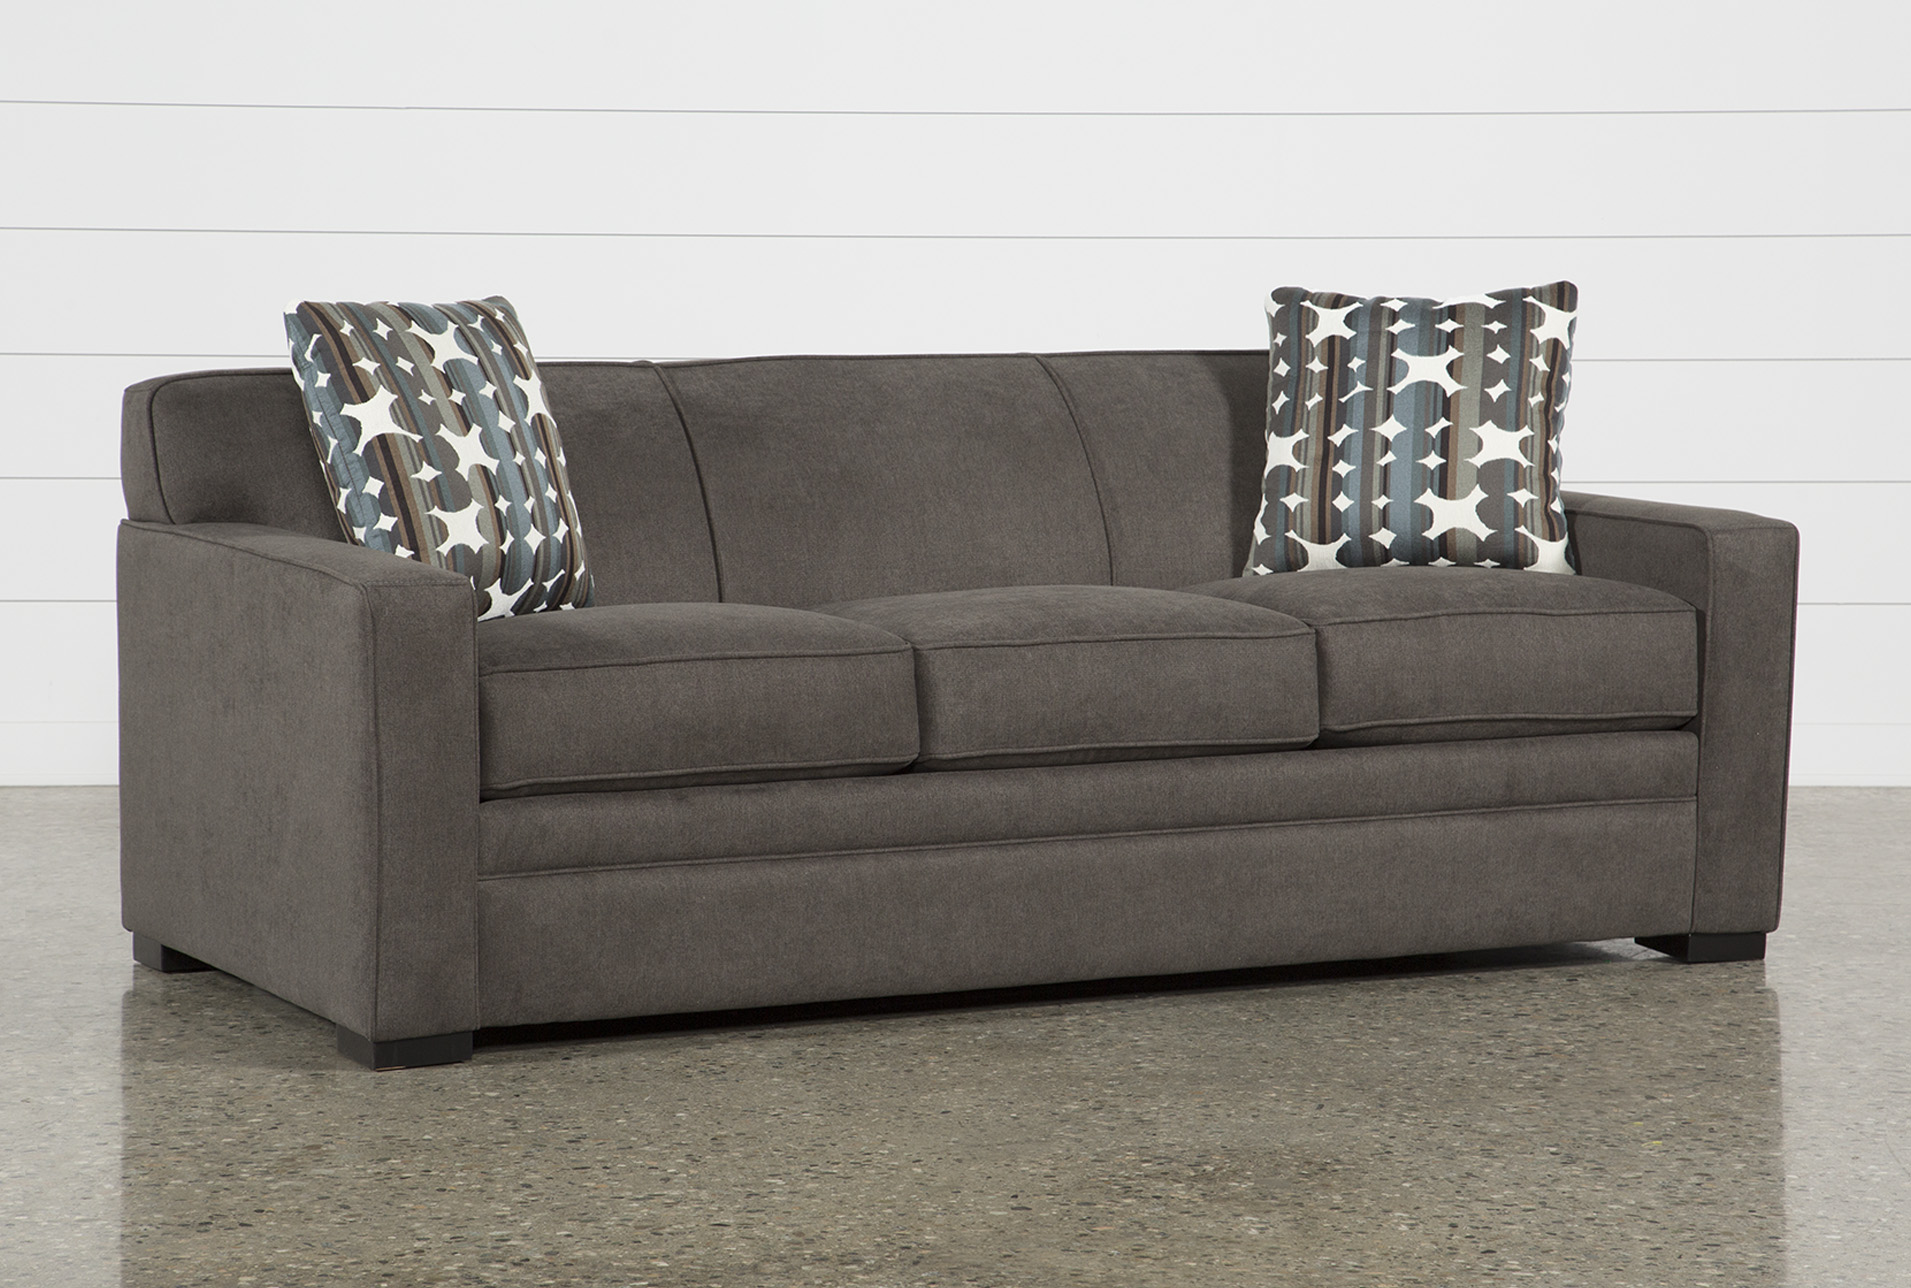 Ethan II Memory Foam Queen Sleeper (Qty: 1) has been successfully added to  your Cart.